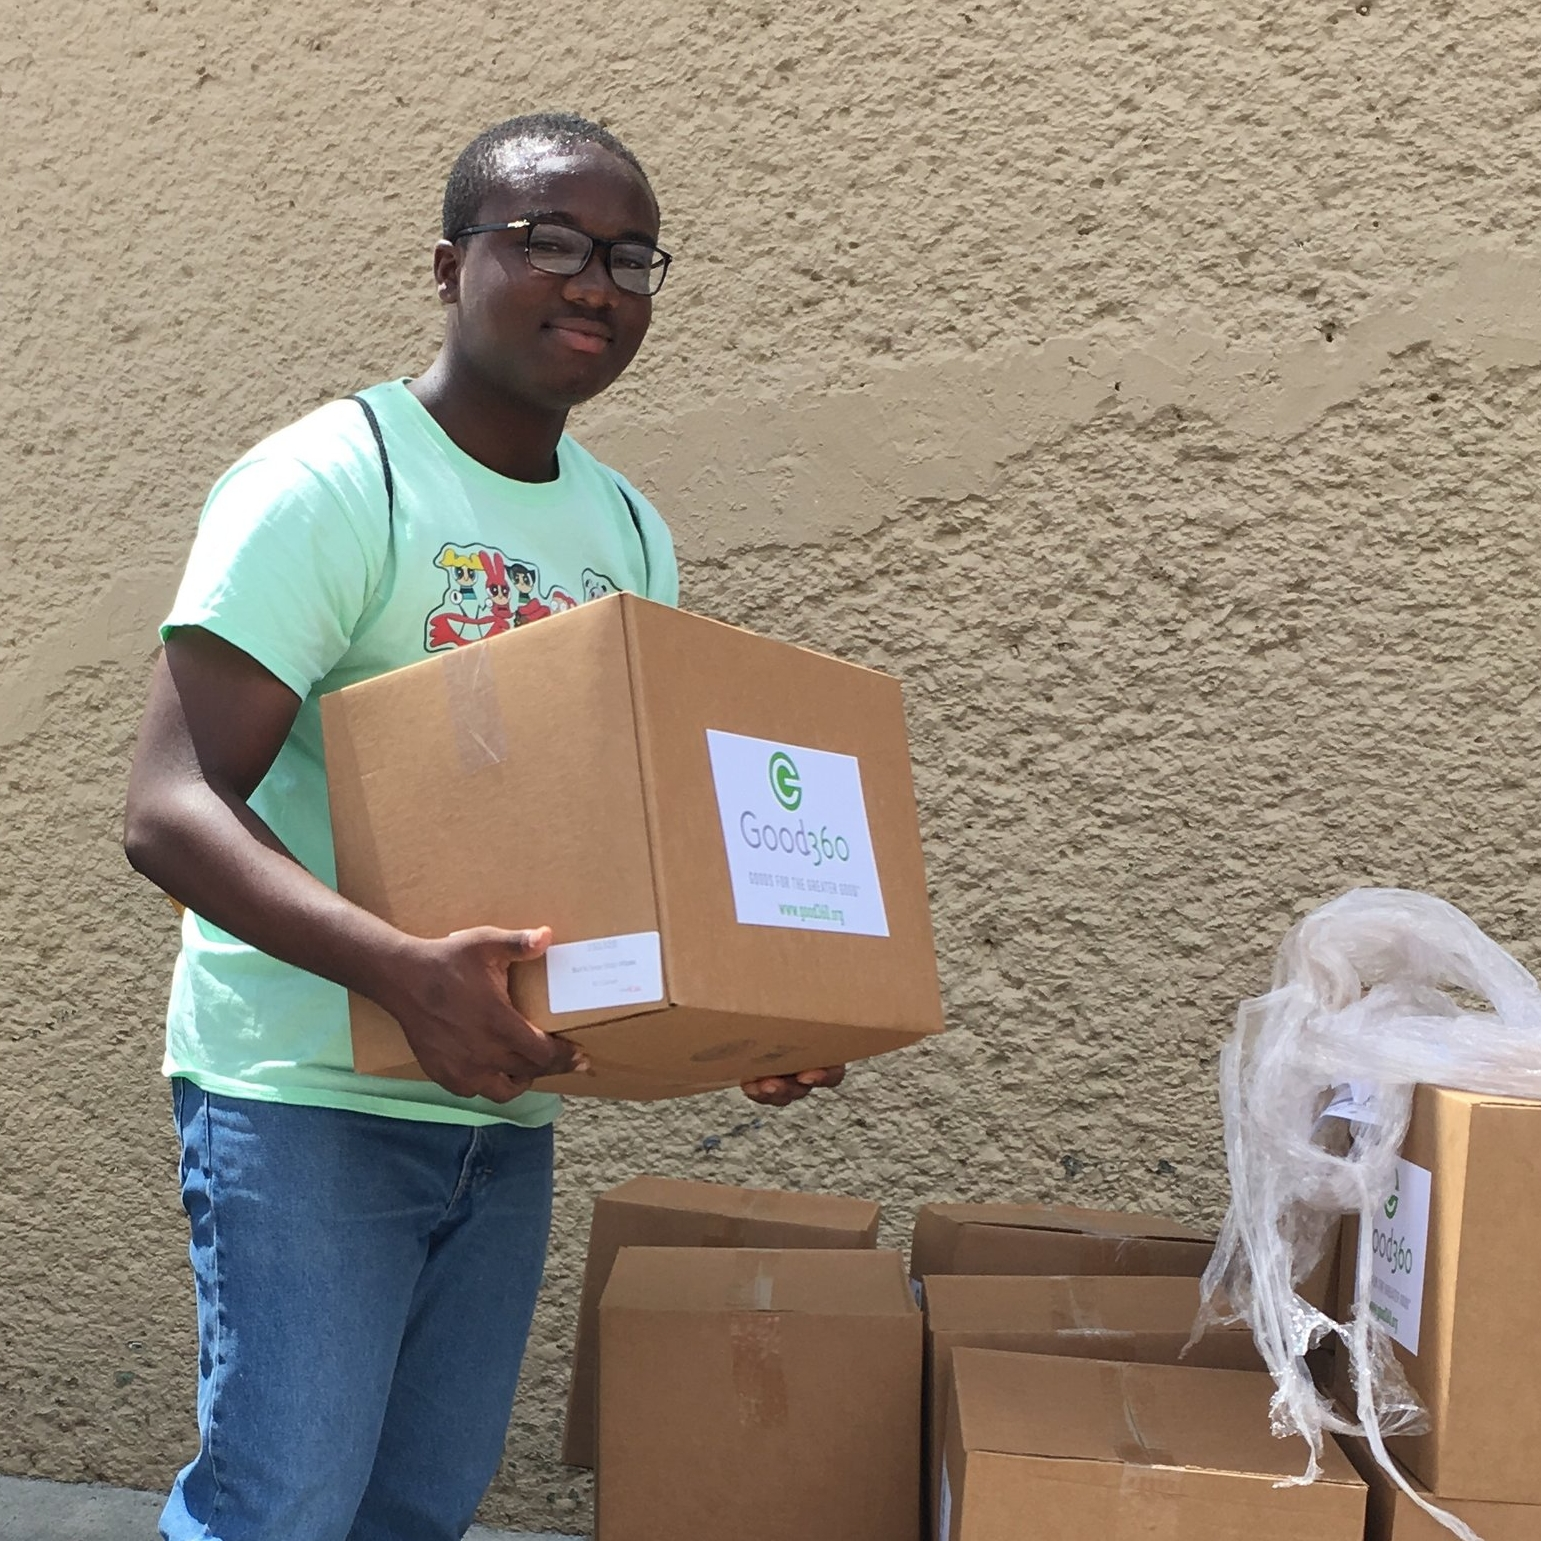 George Francis (Spring 2018 student) is pictured here volunteering with Perfect Heart (a St. Thomas Recovery Team organization) on goods distribution. Francis and fellow student Lovynette Brown went above and beyond in their participation in this project.